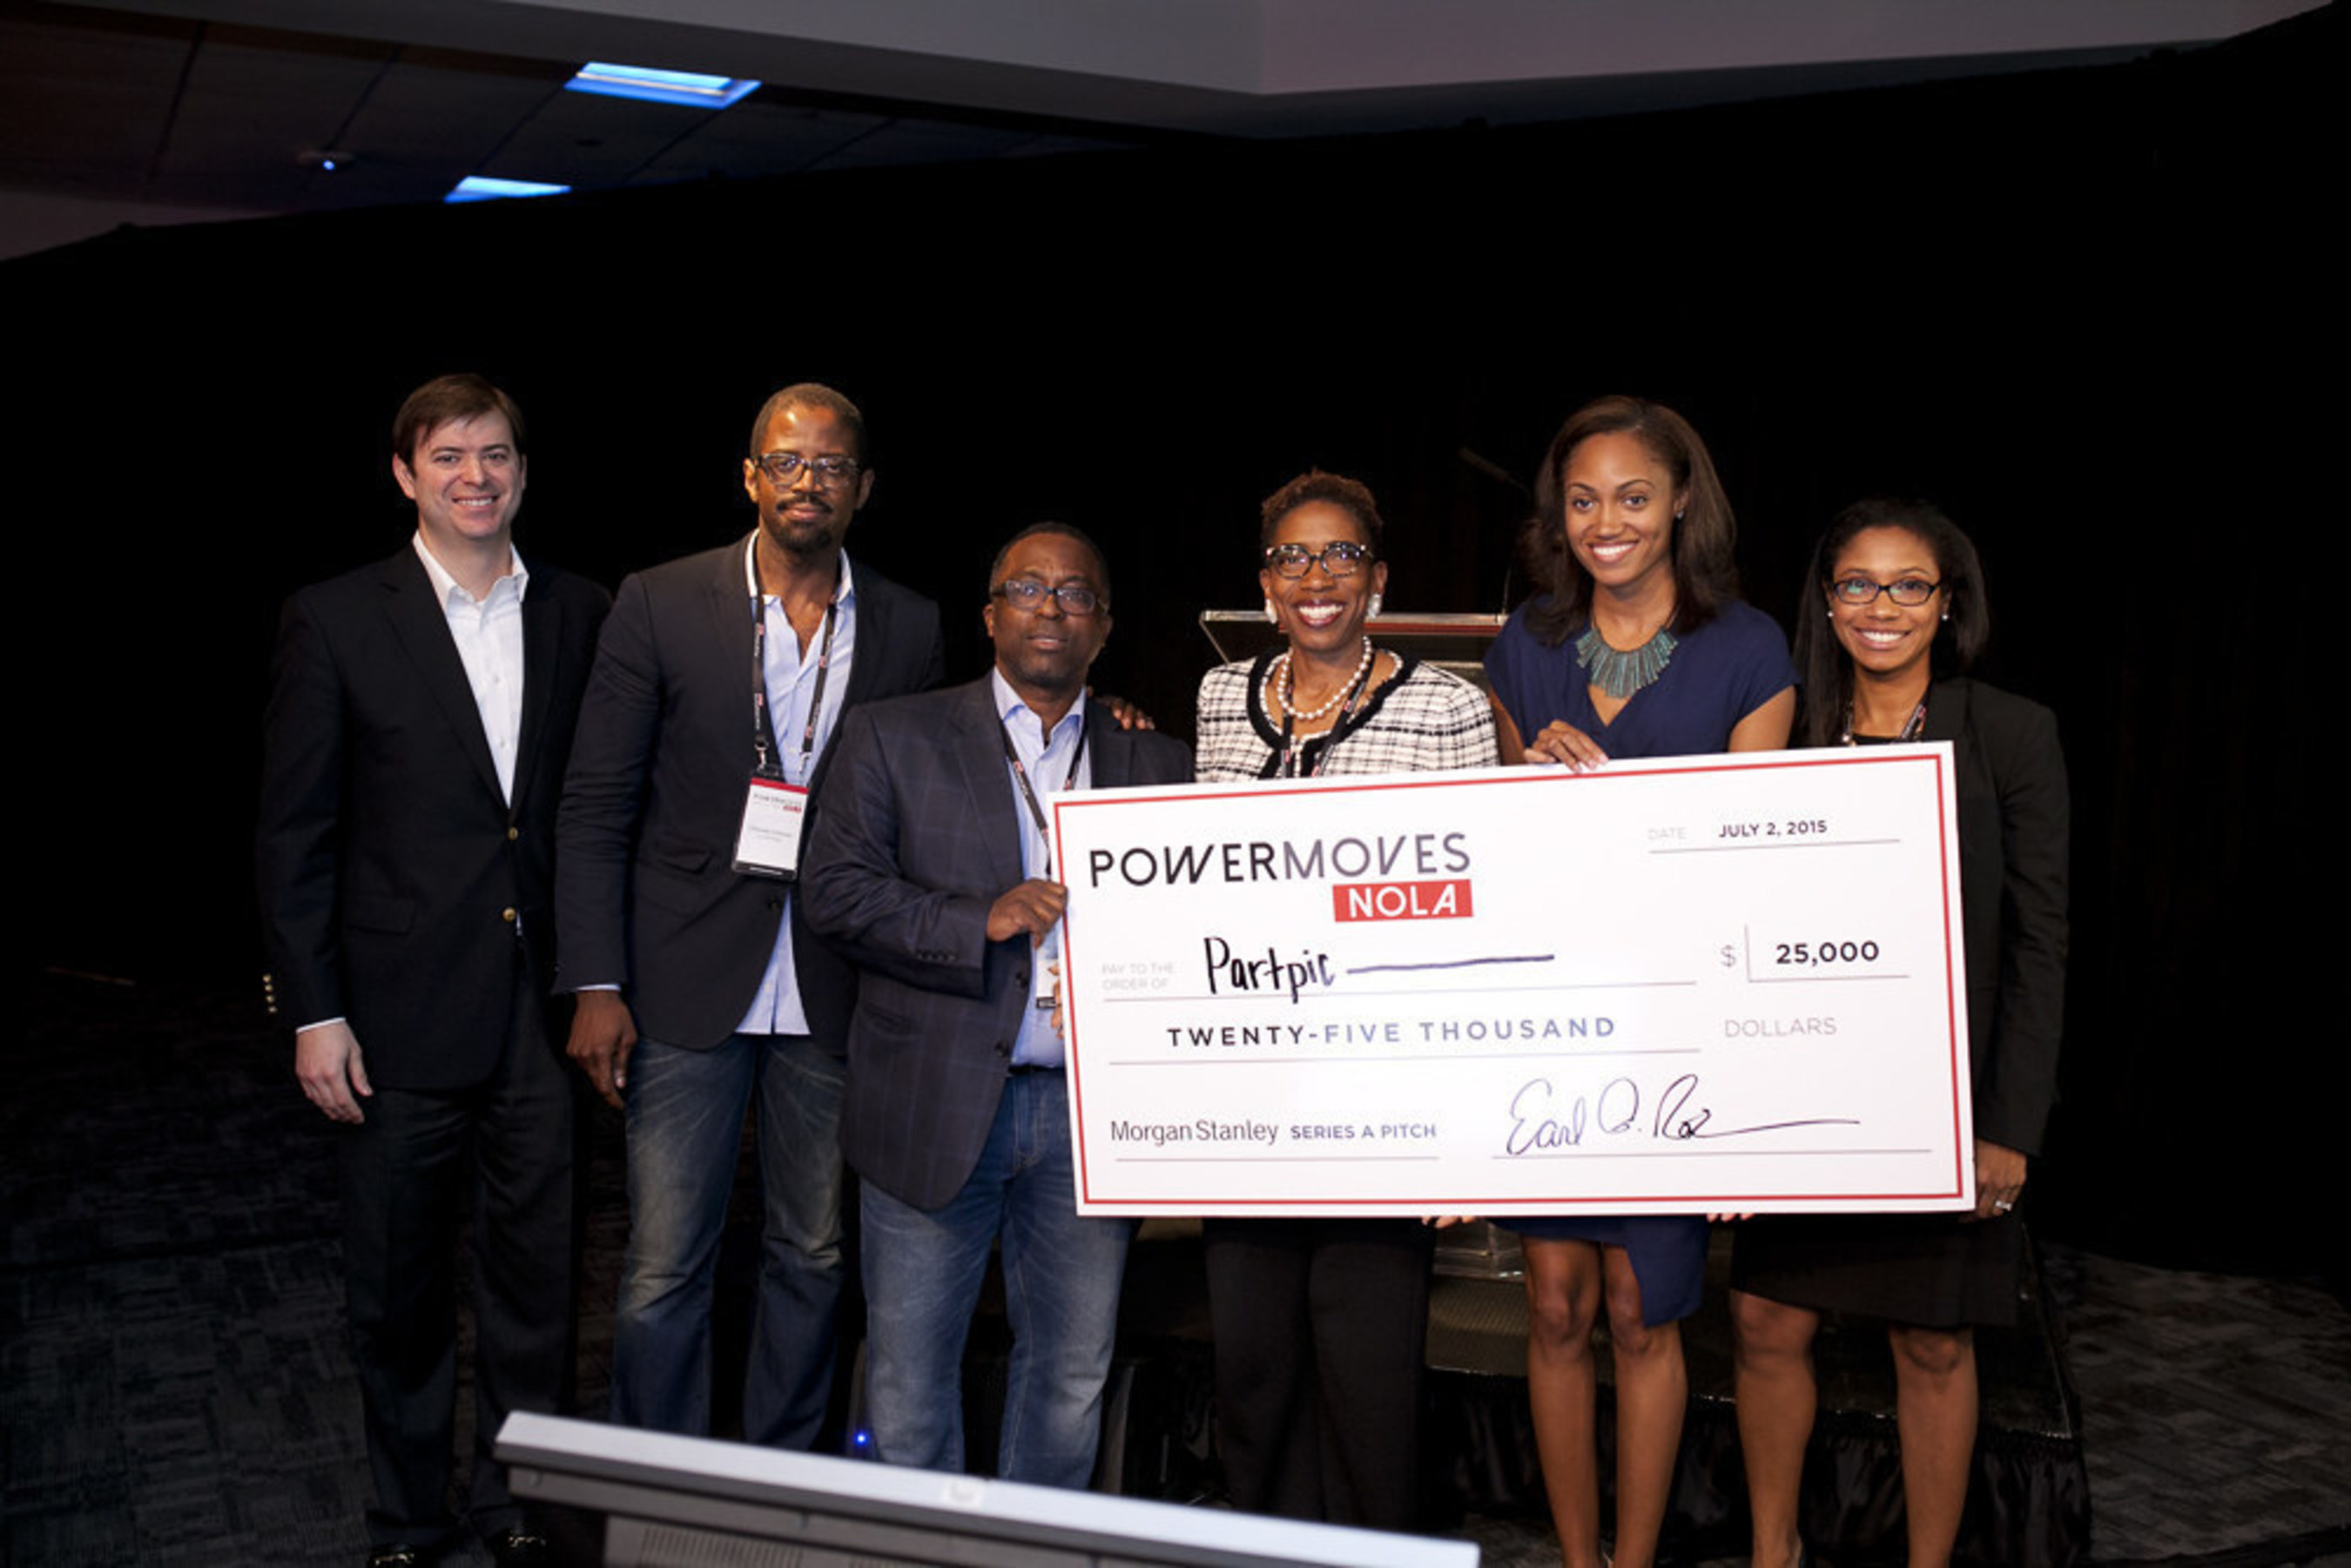 Partpic won a $25,000 cash prize at the Morgan Stanley Series A Pitch contest during the PowerMoves.NOLA annual conference. The startup company's enterprise software solution simplifies the search and purchase process of replacement parts using visual recognition technology.